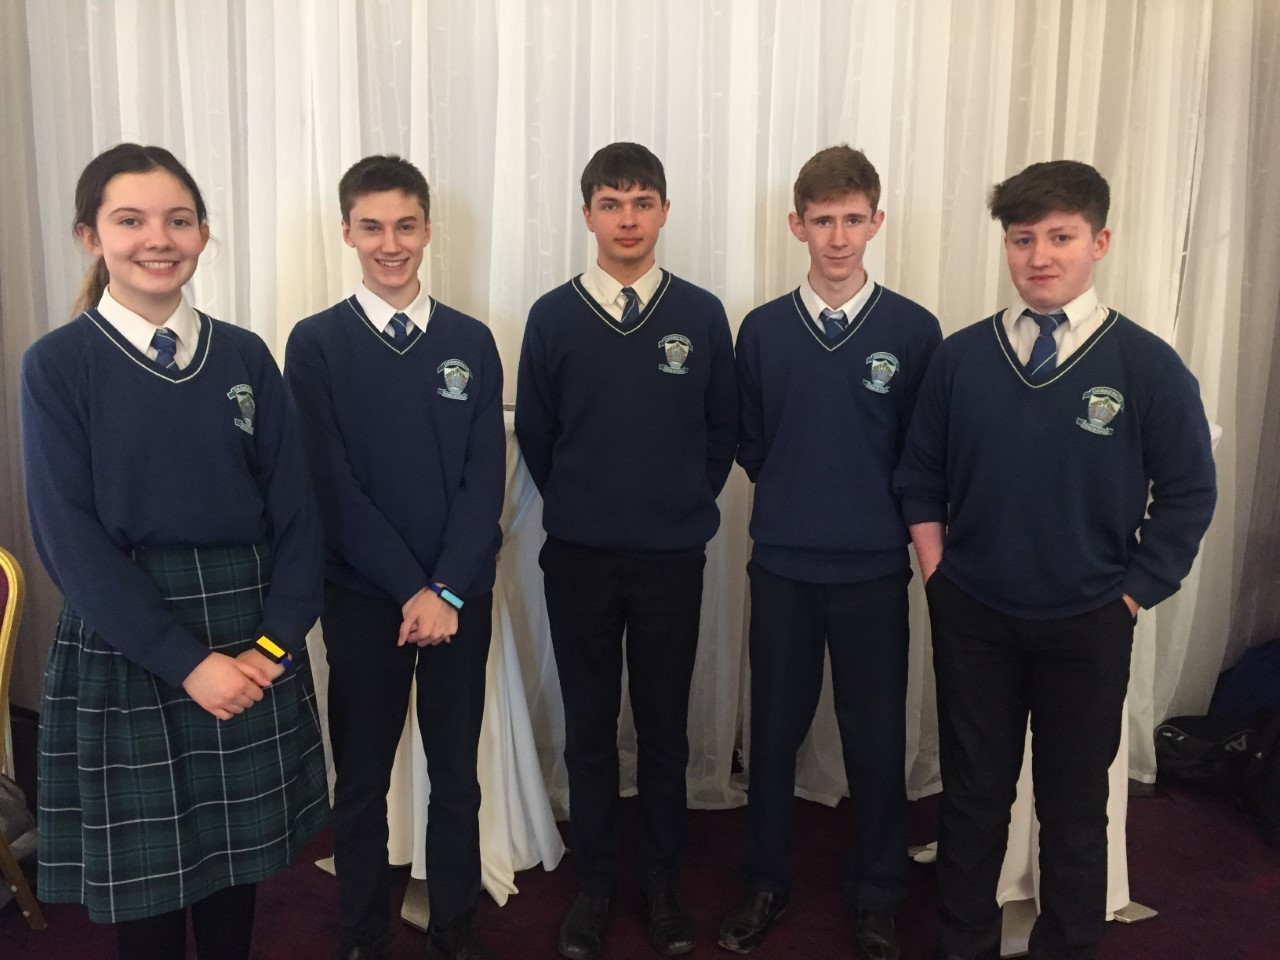 Meath county enterprise Awards 2